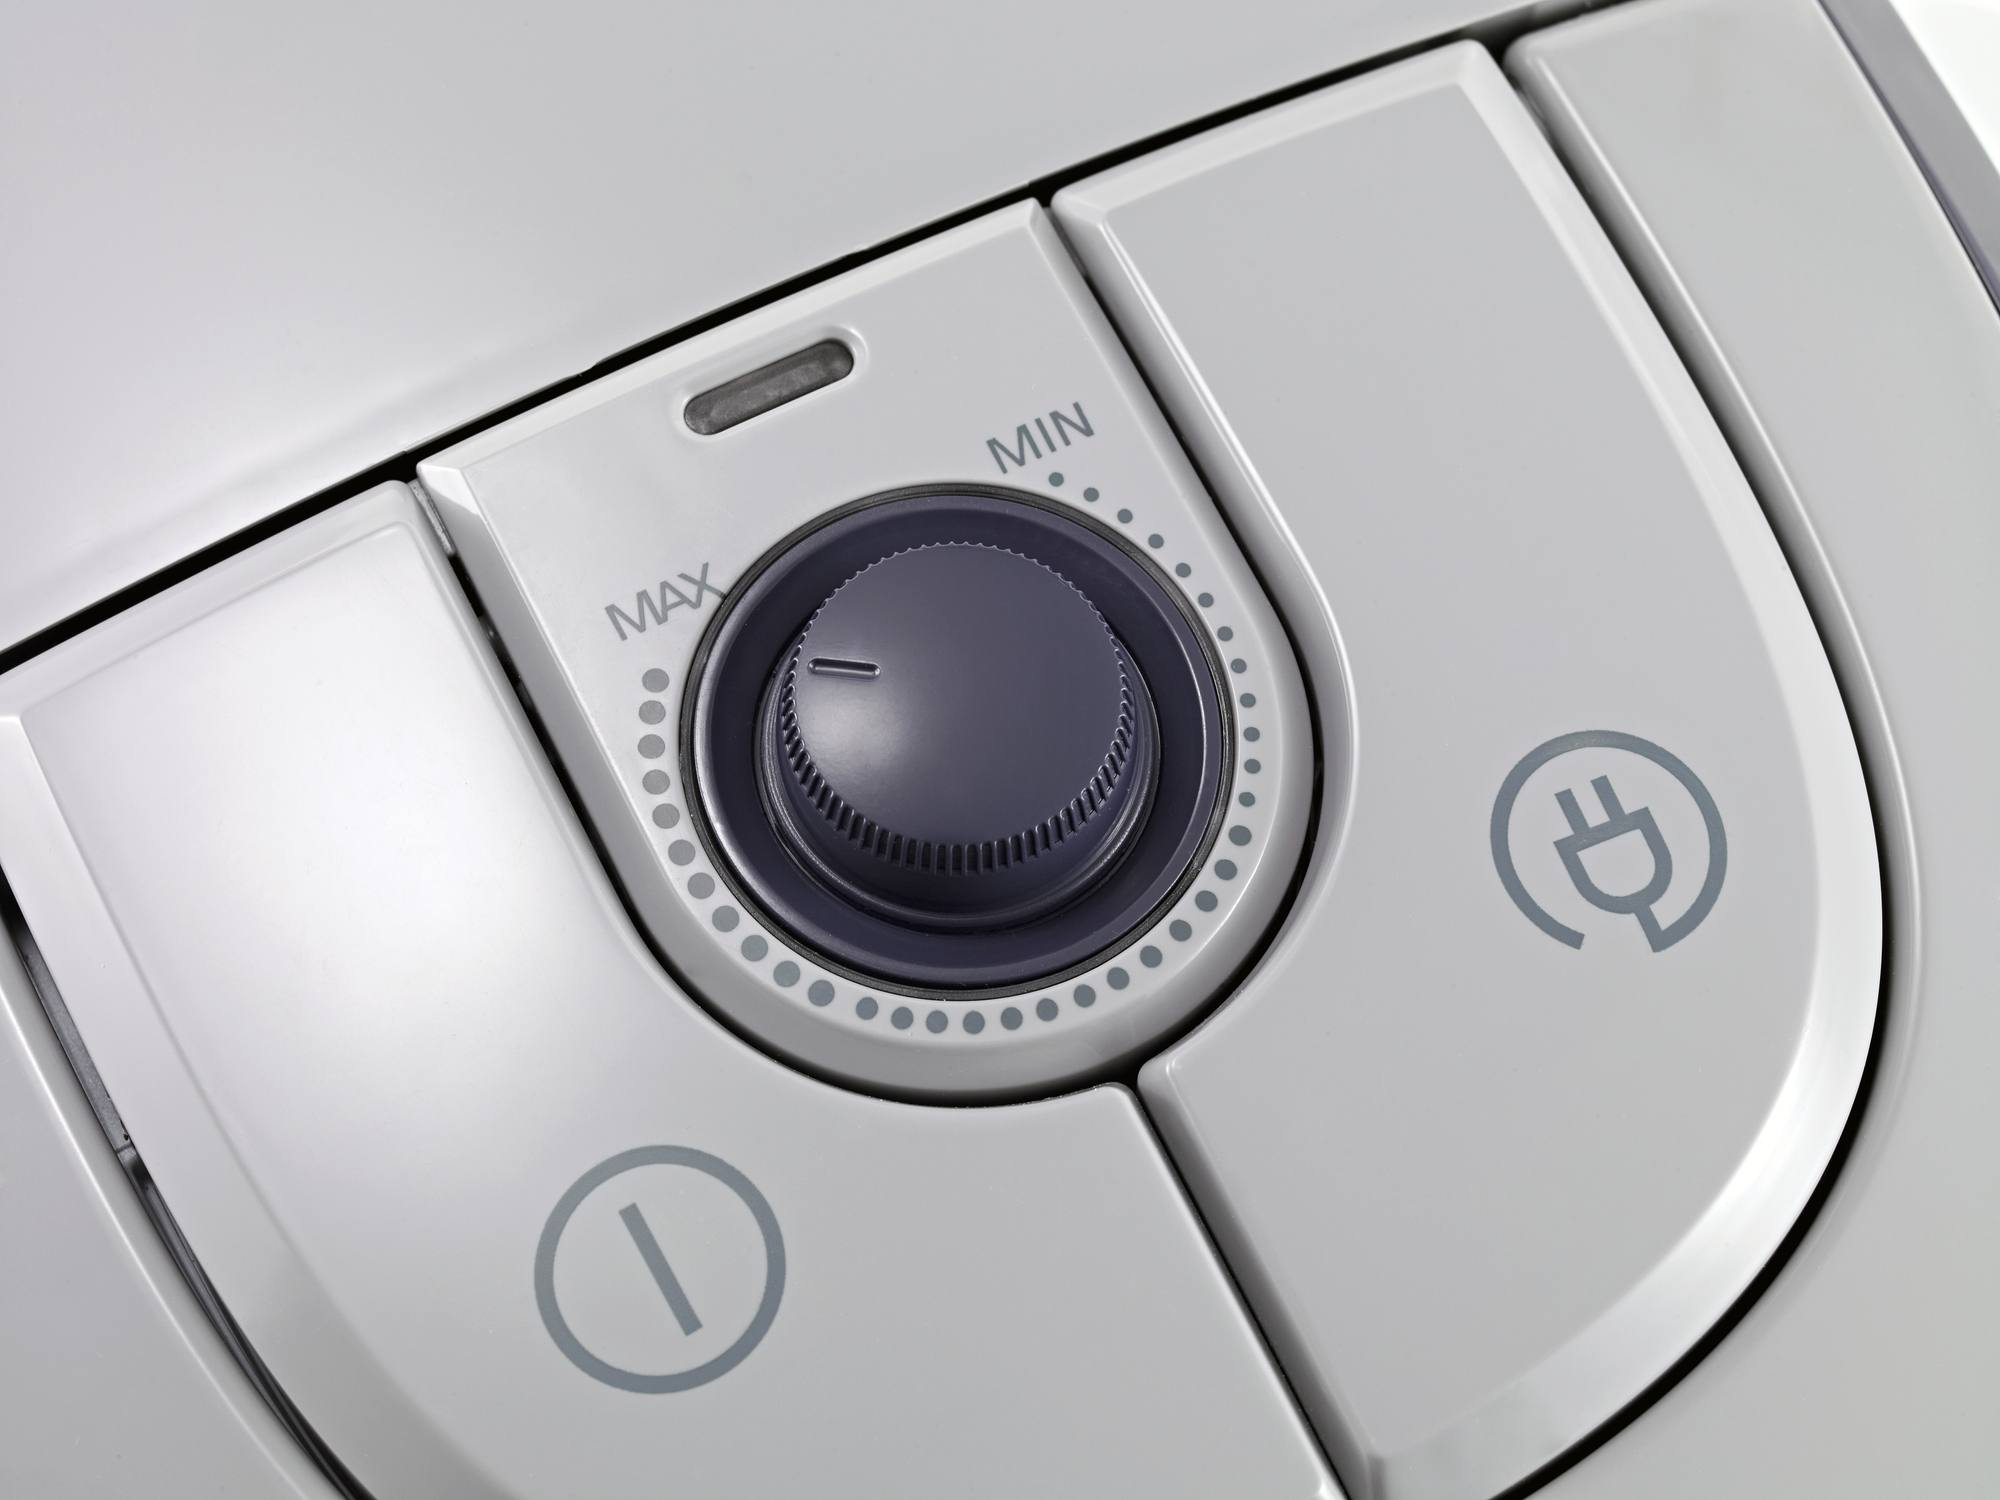 Vacuum setting buttons